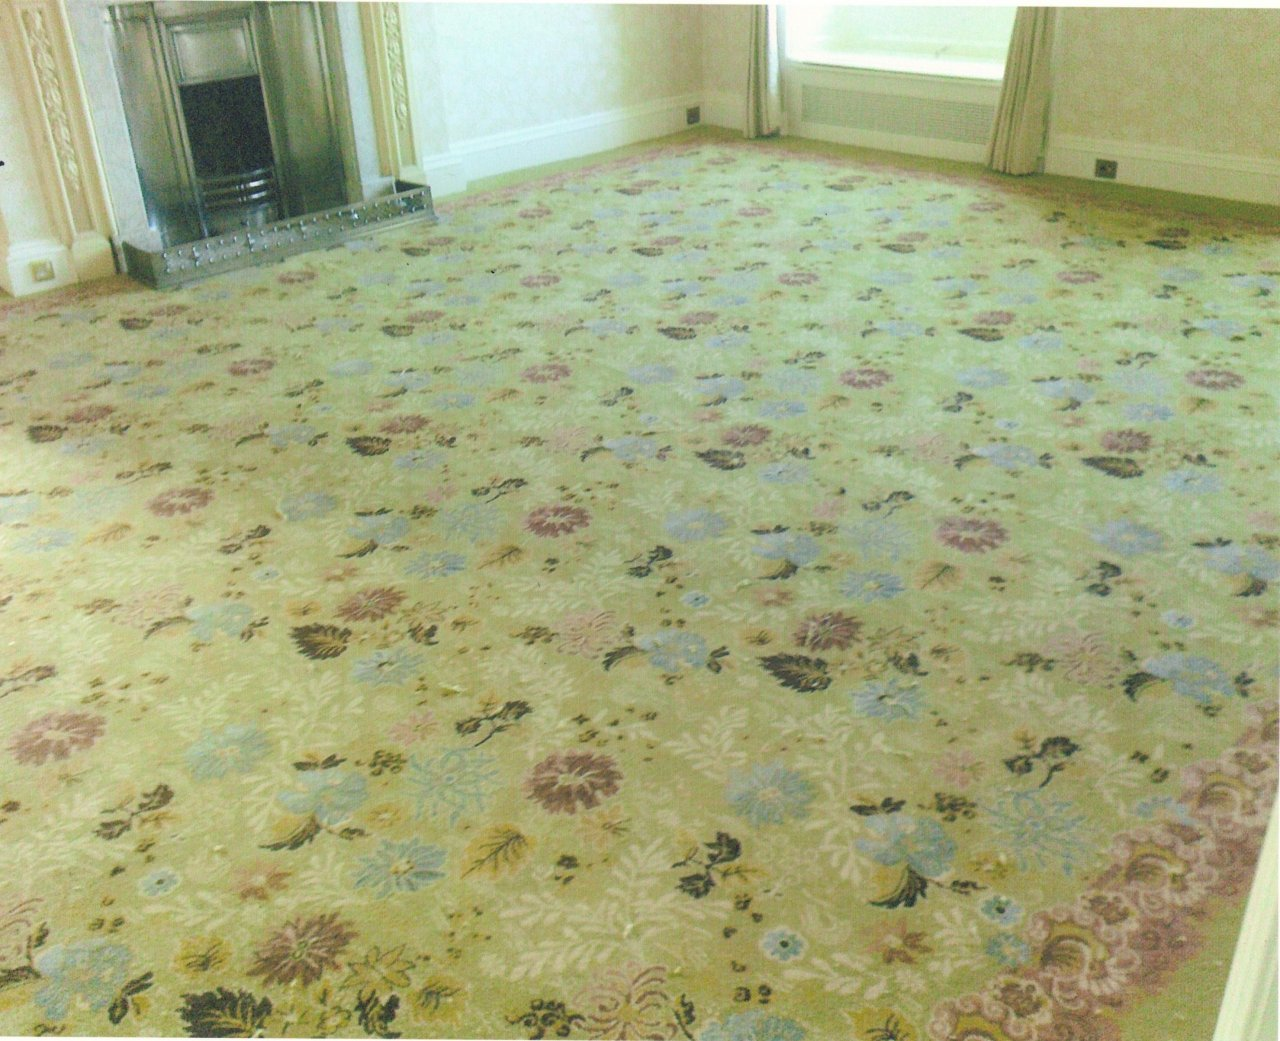 The new carpet laid March 2012, a 1890's Pre-Raphaelite design never previously executed.